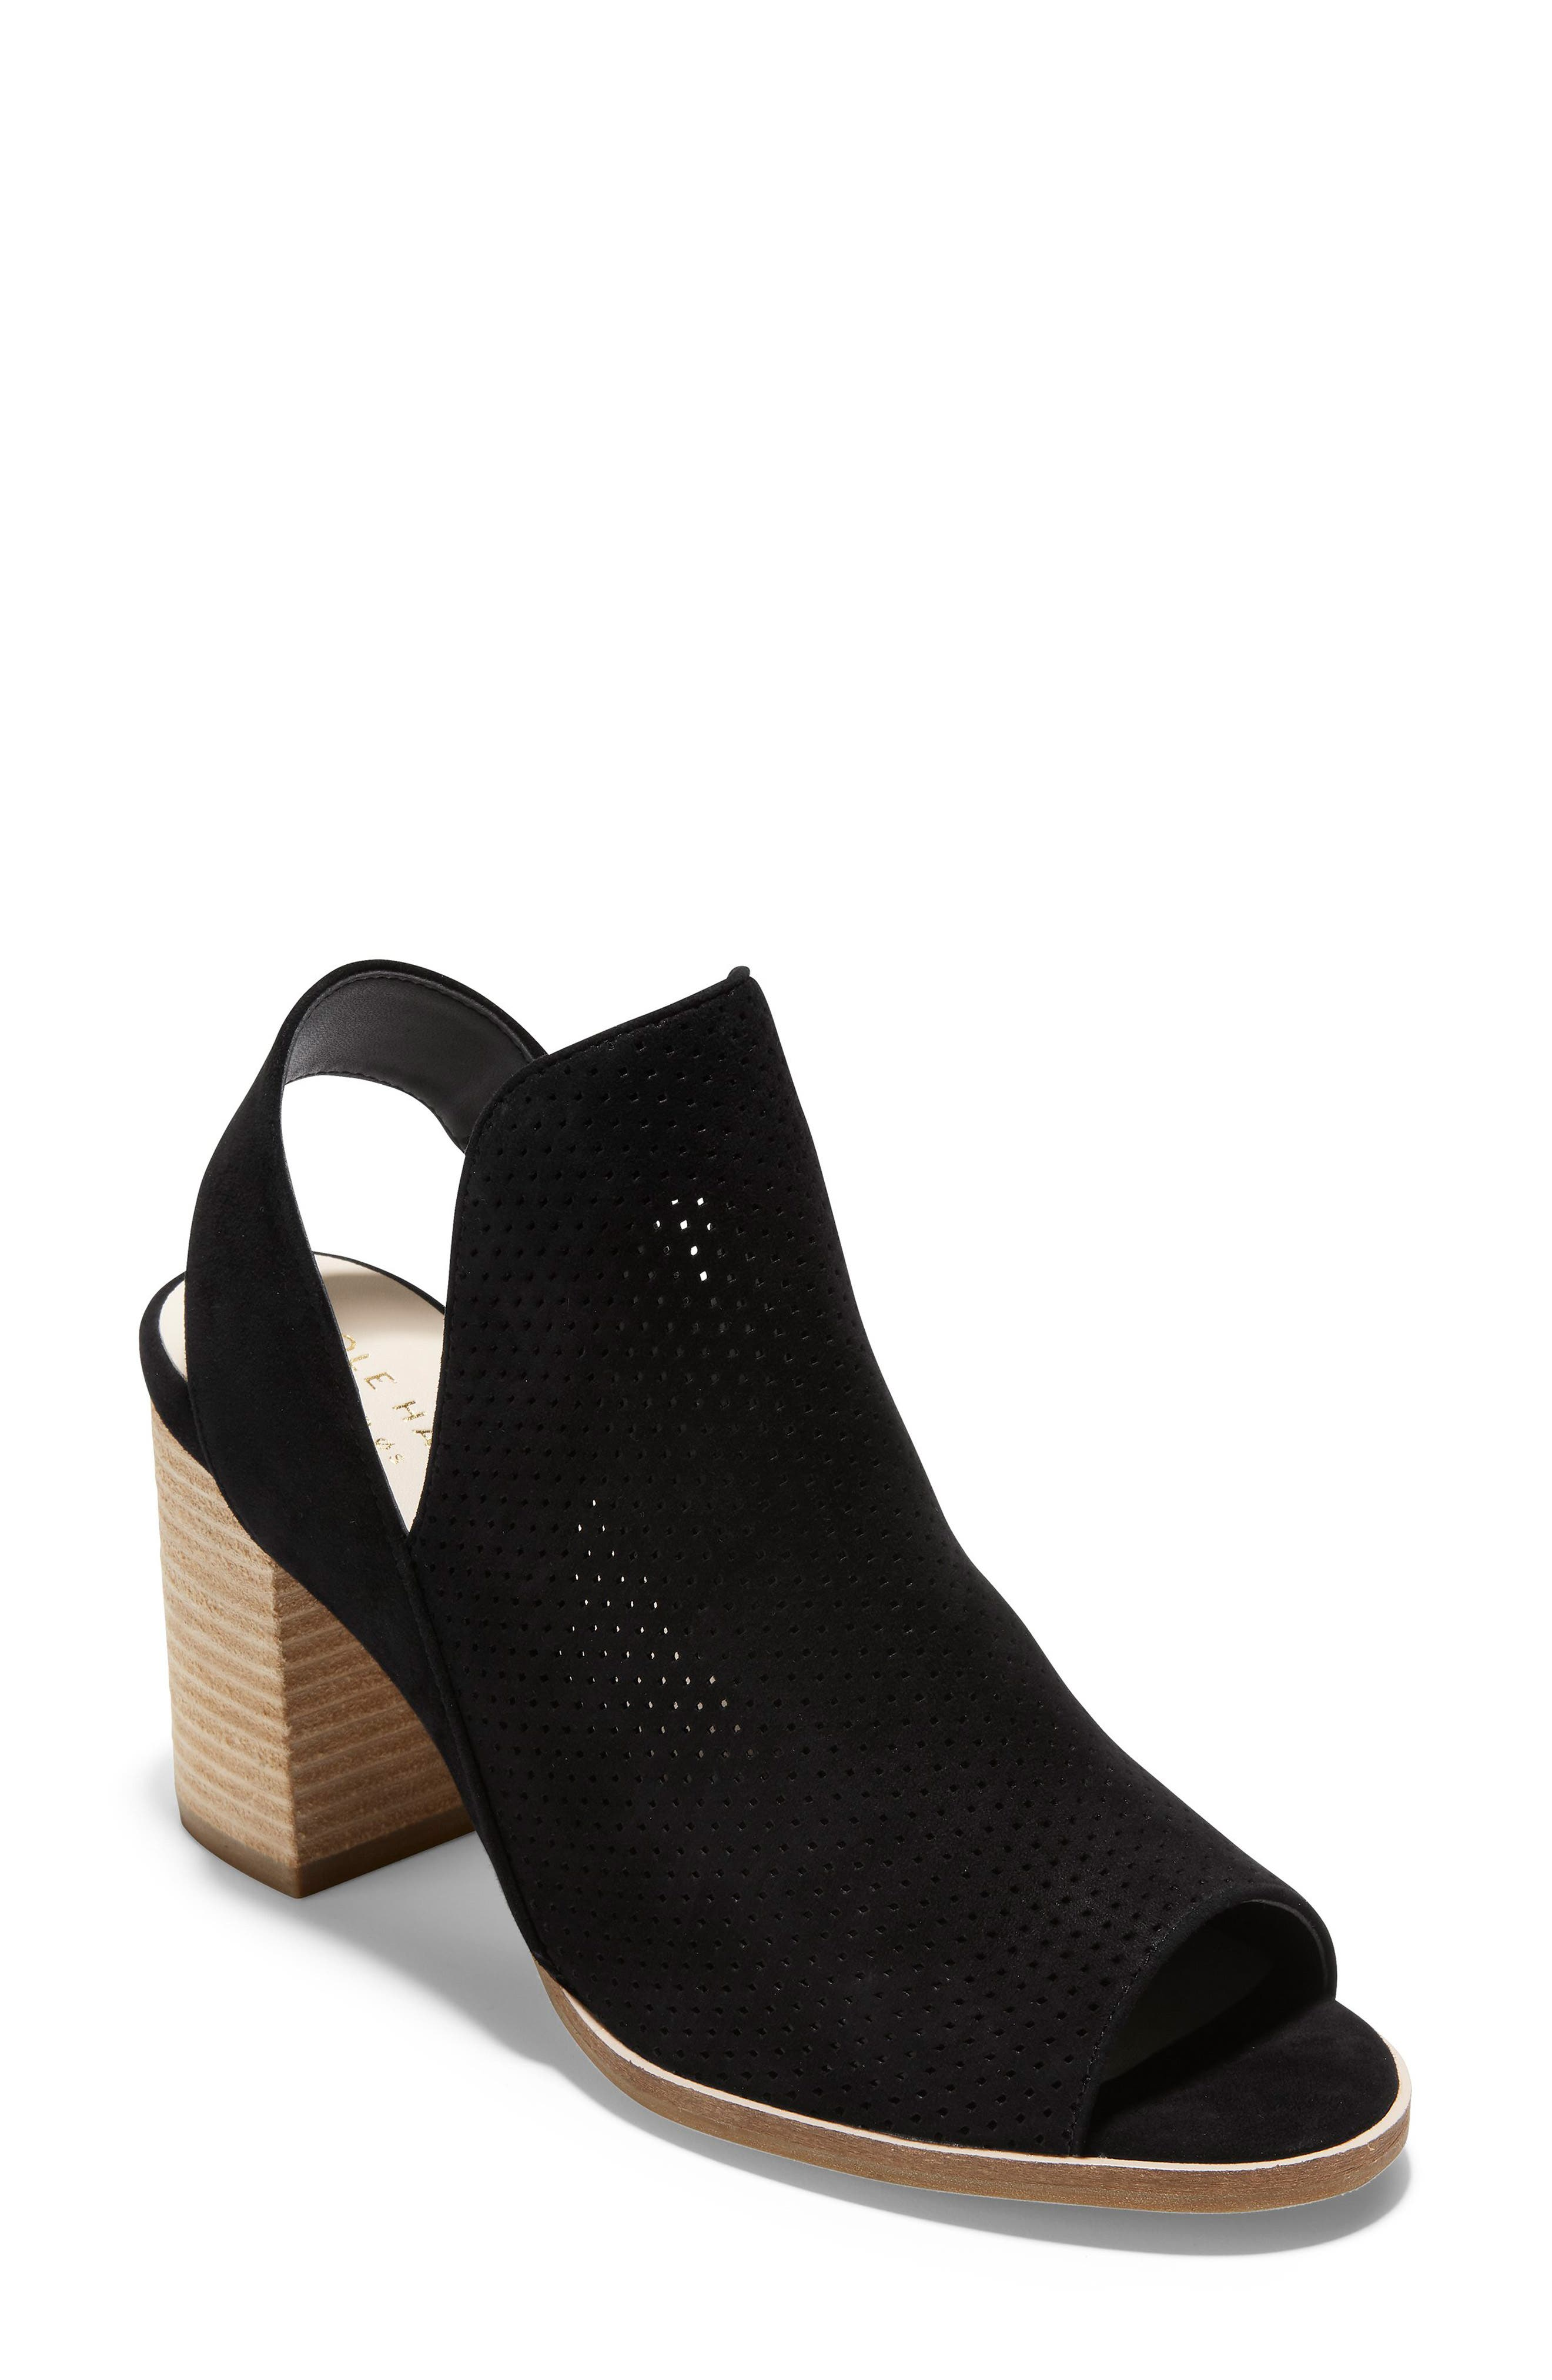 COLE HAAN Callista Perforated Slingback Sandal, Main, color, BLACK PERF SUEDE